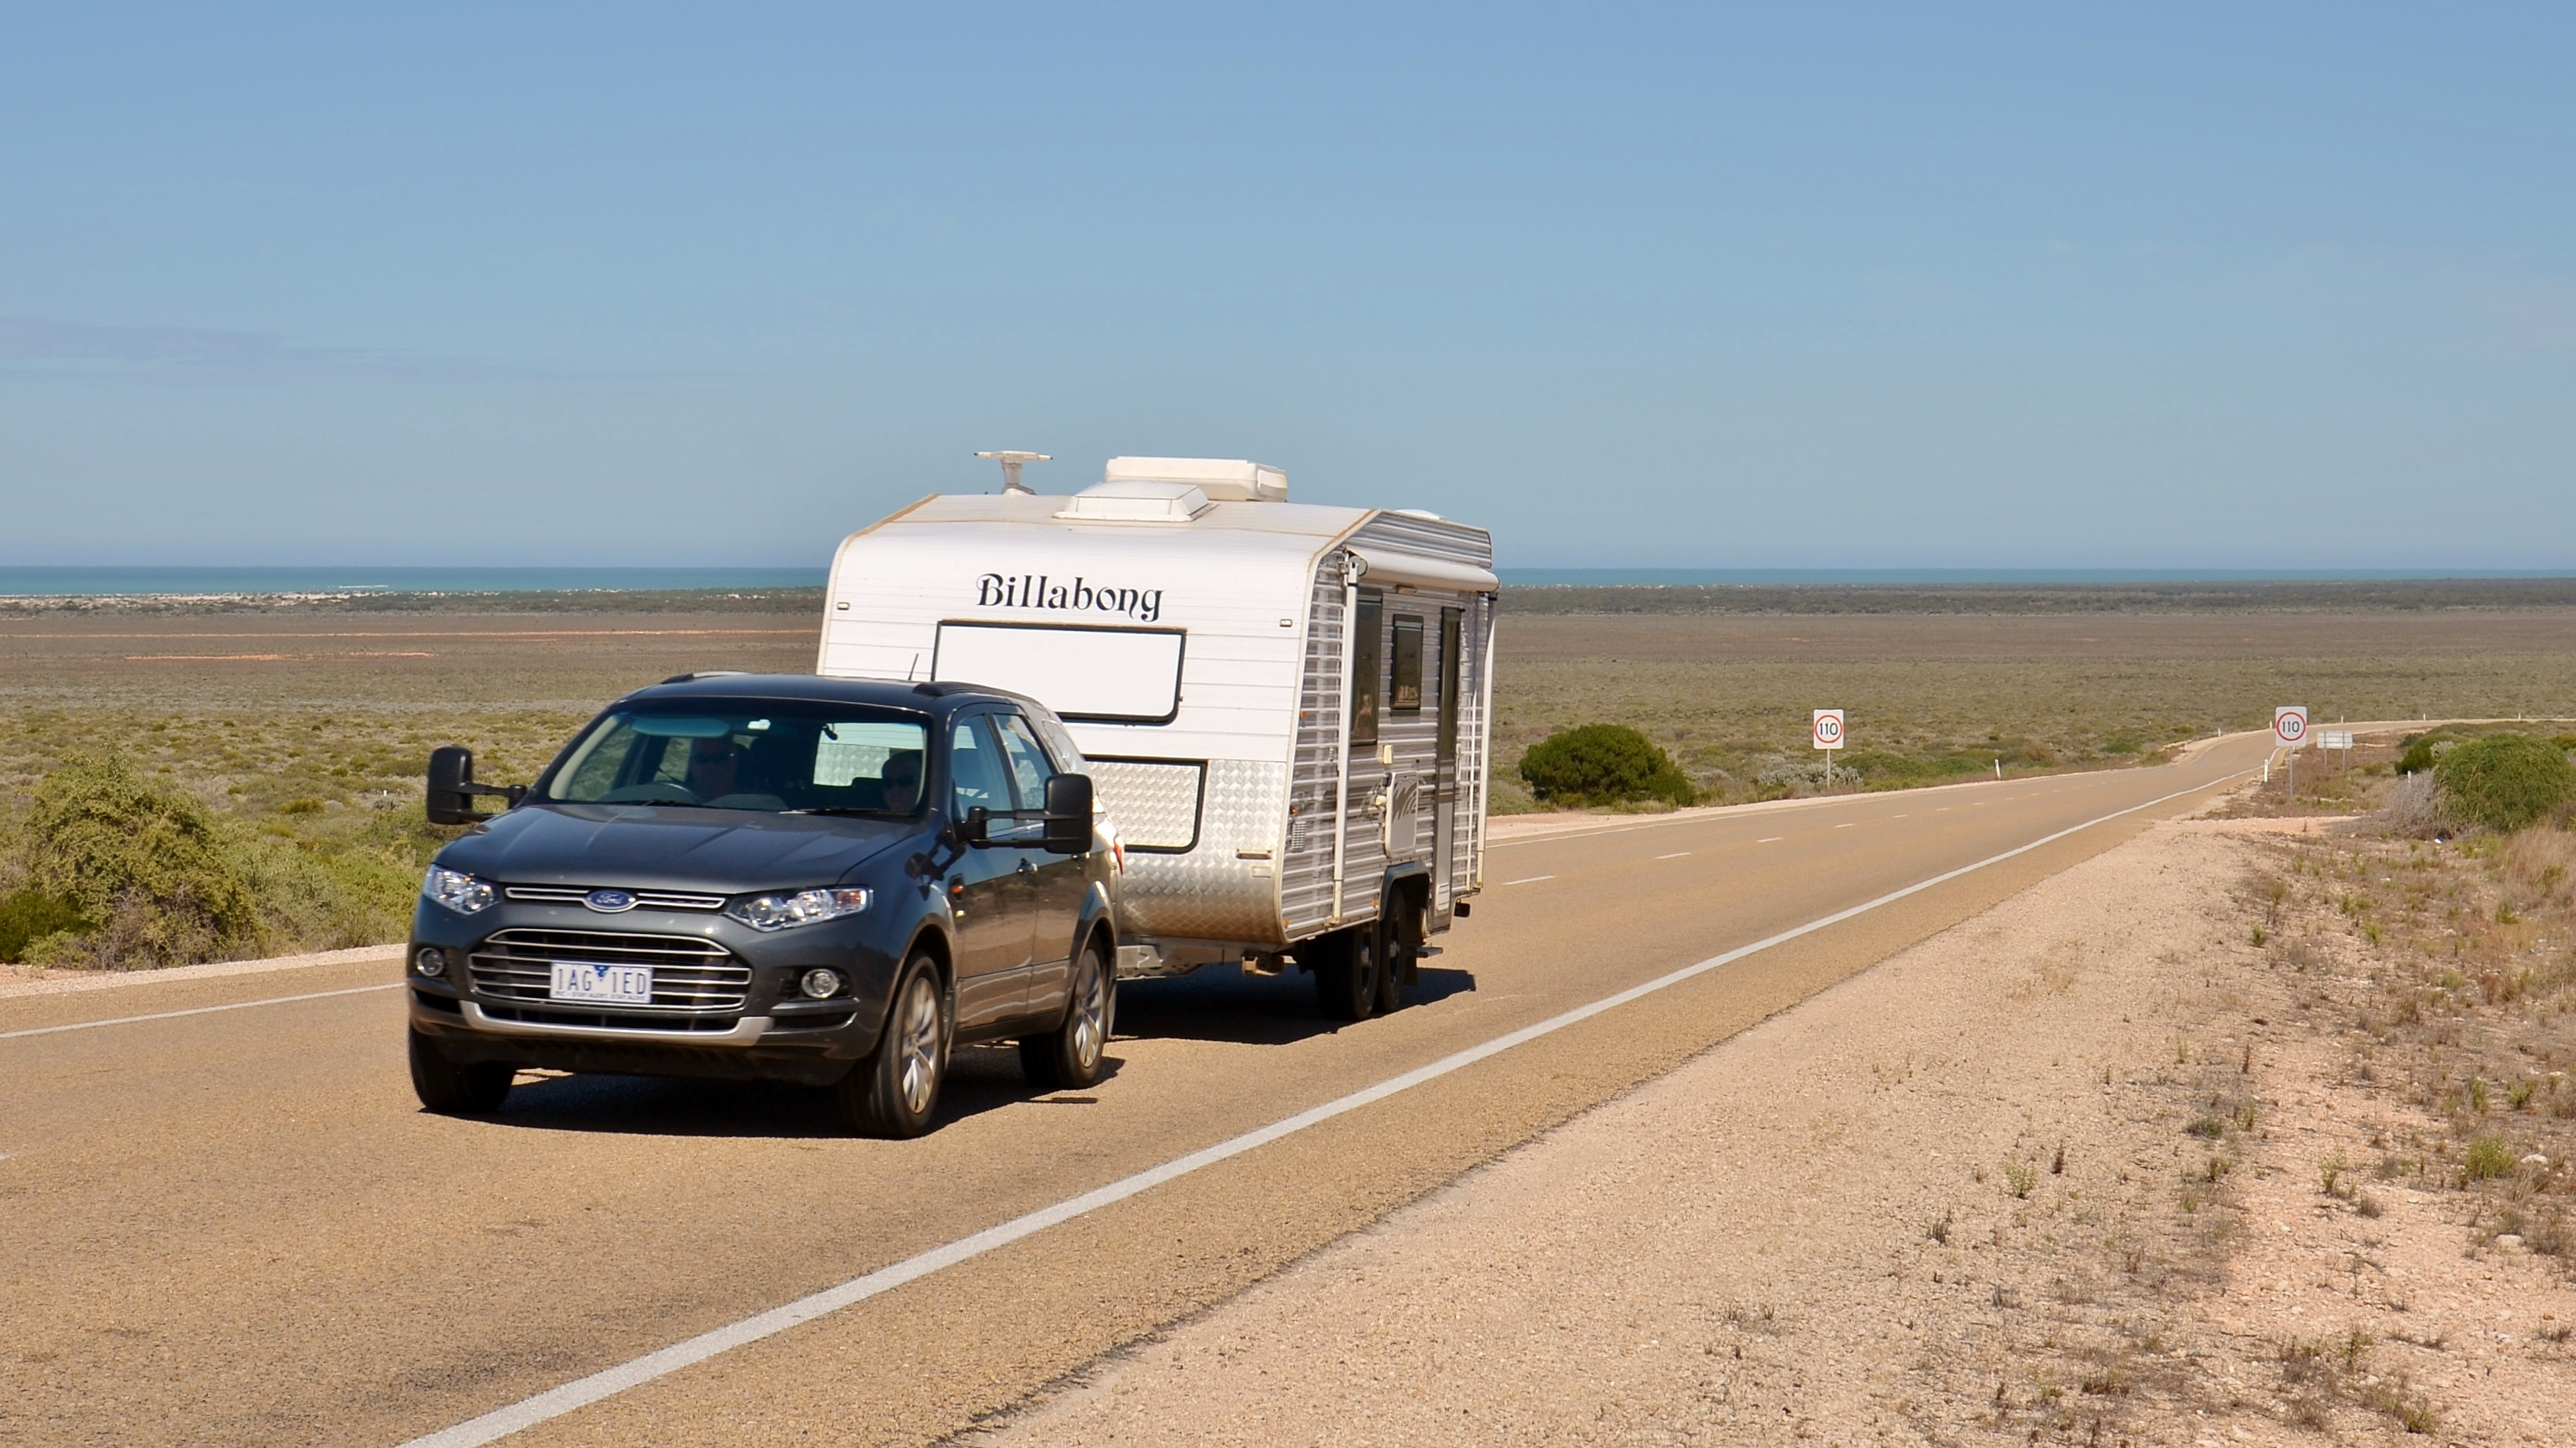 Eyre Highway - Wikipedia